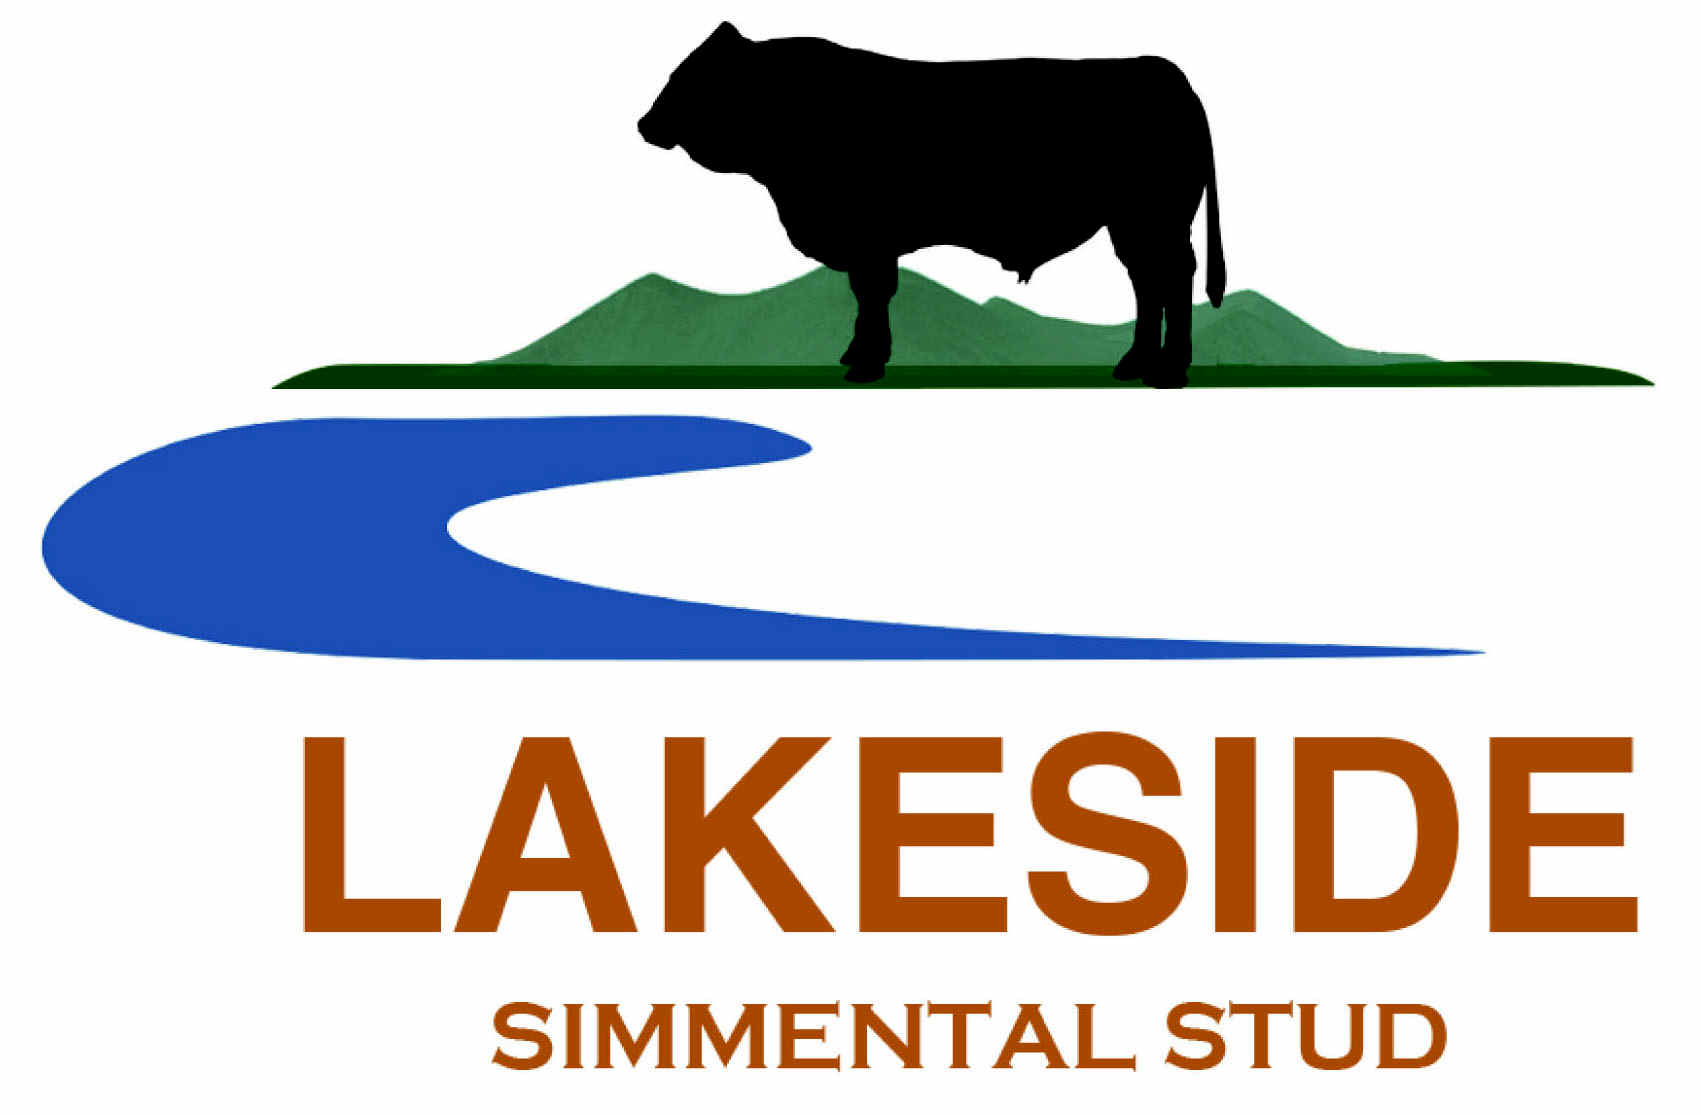 Lakeside Logo.jpg (98123 字节)